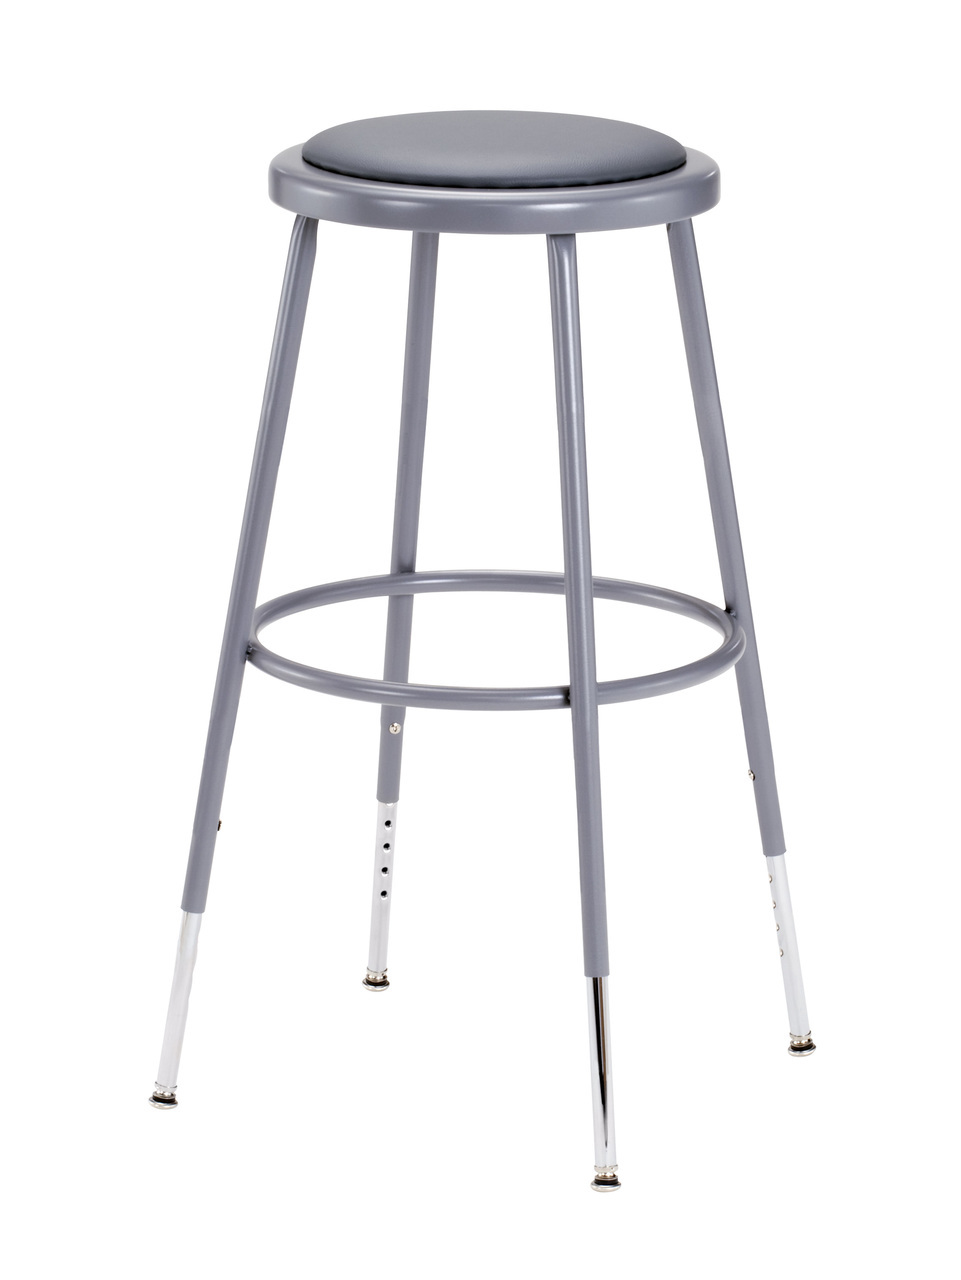 6424h Adjustable Stool With Grey Padded Seat L Affordable Adjustable